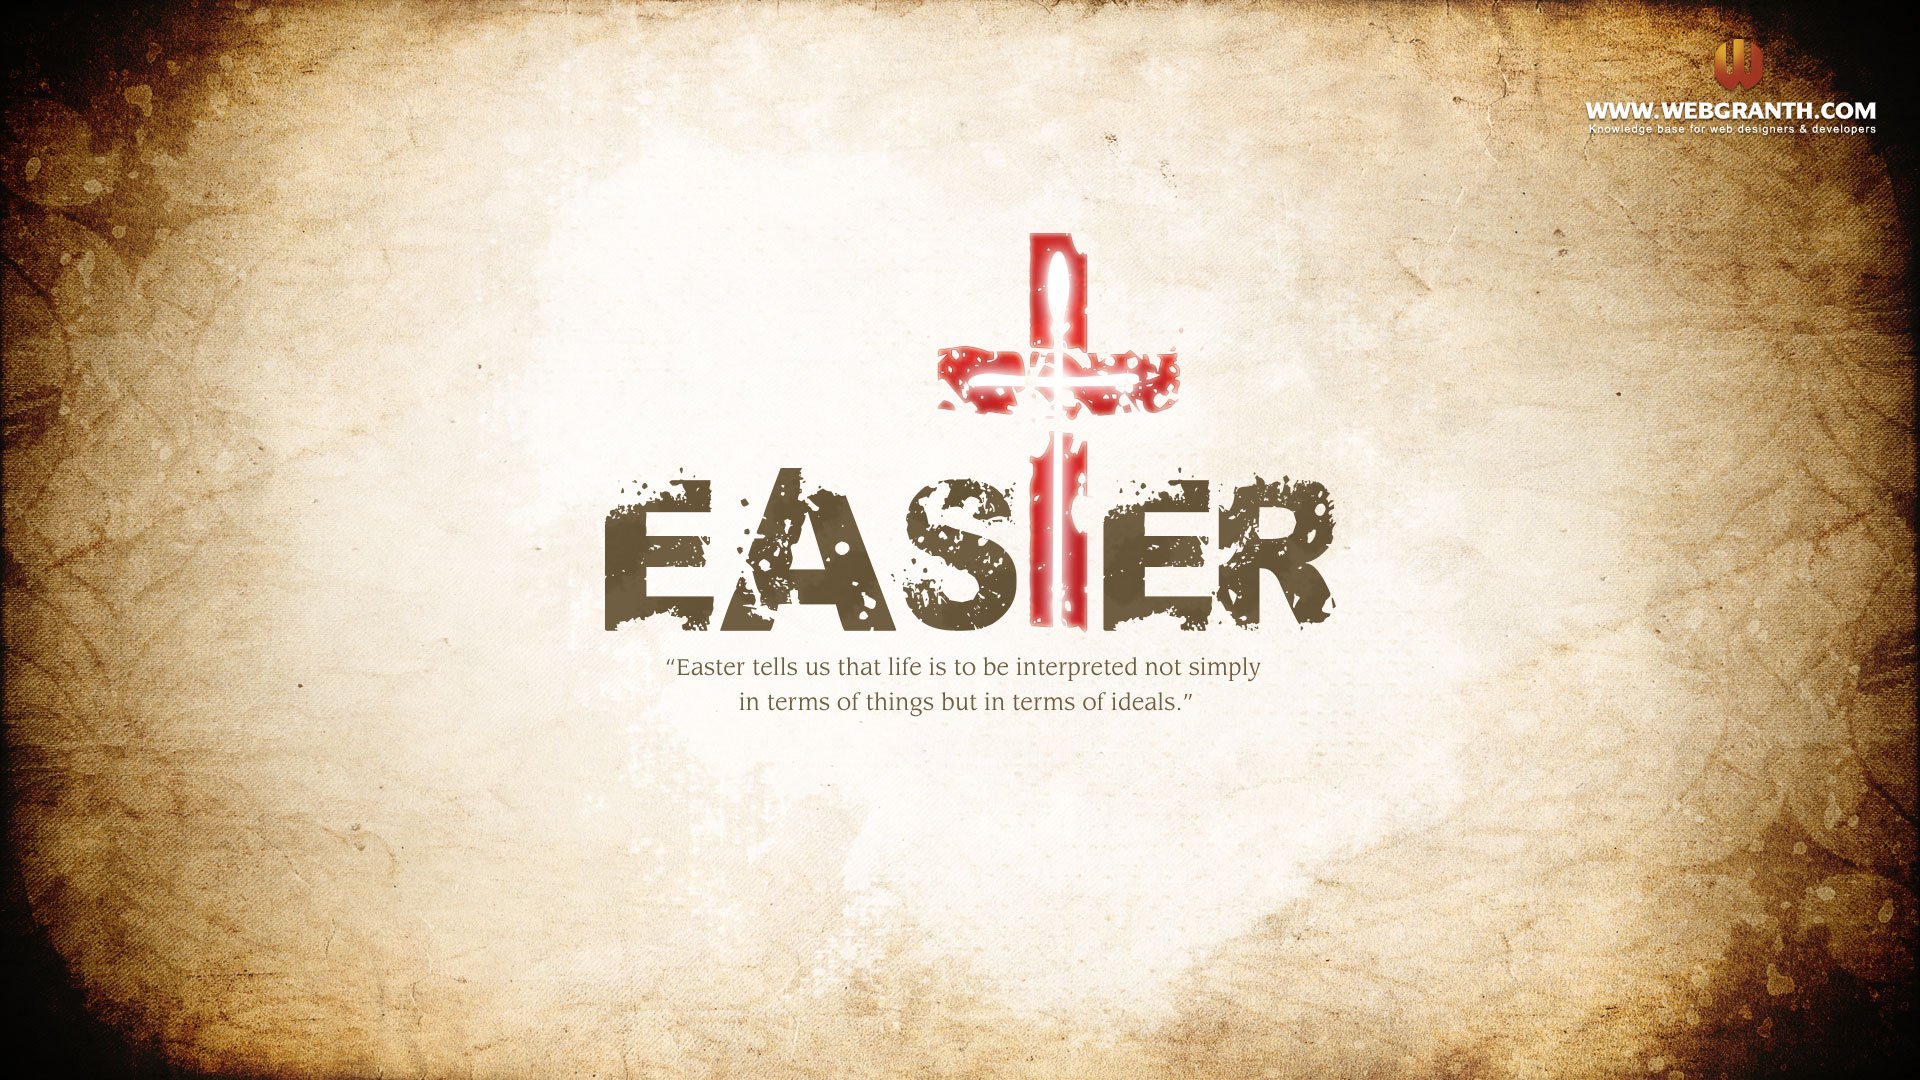 happy easter day 2013 hd wallpaper happy easter day 2013 Search 1920x1080